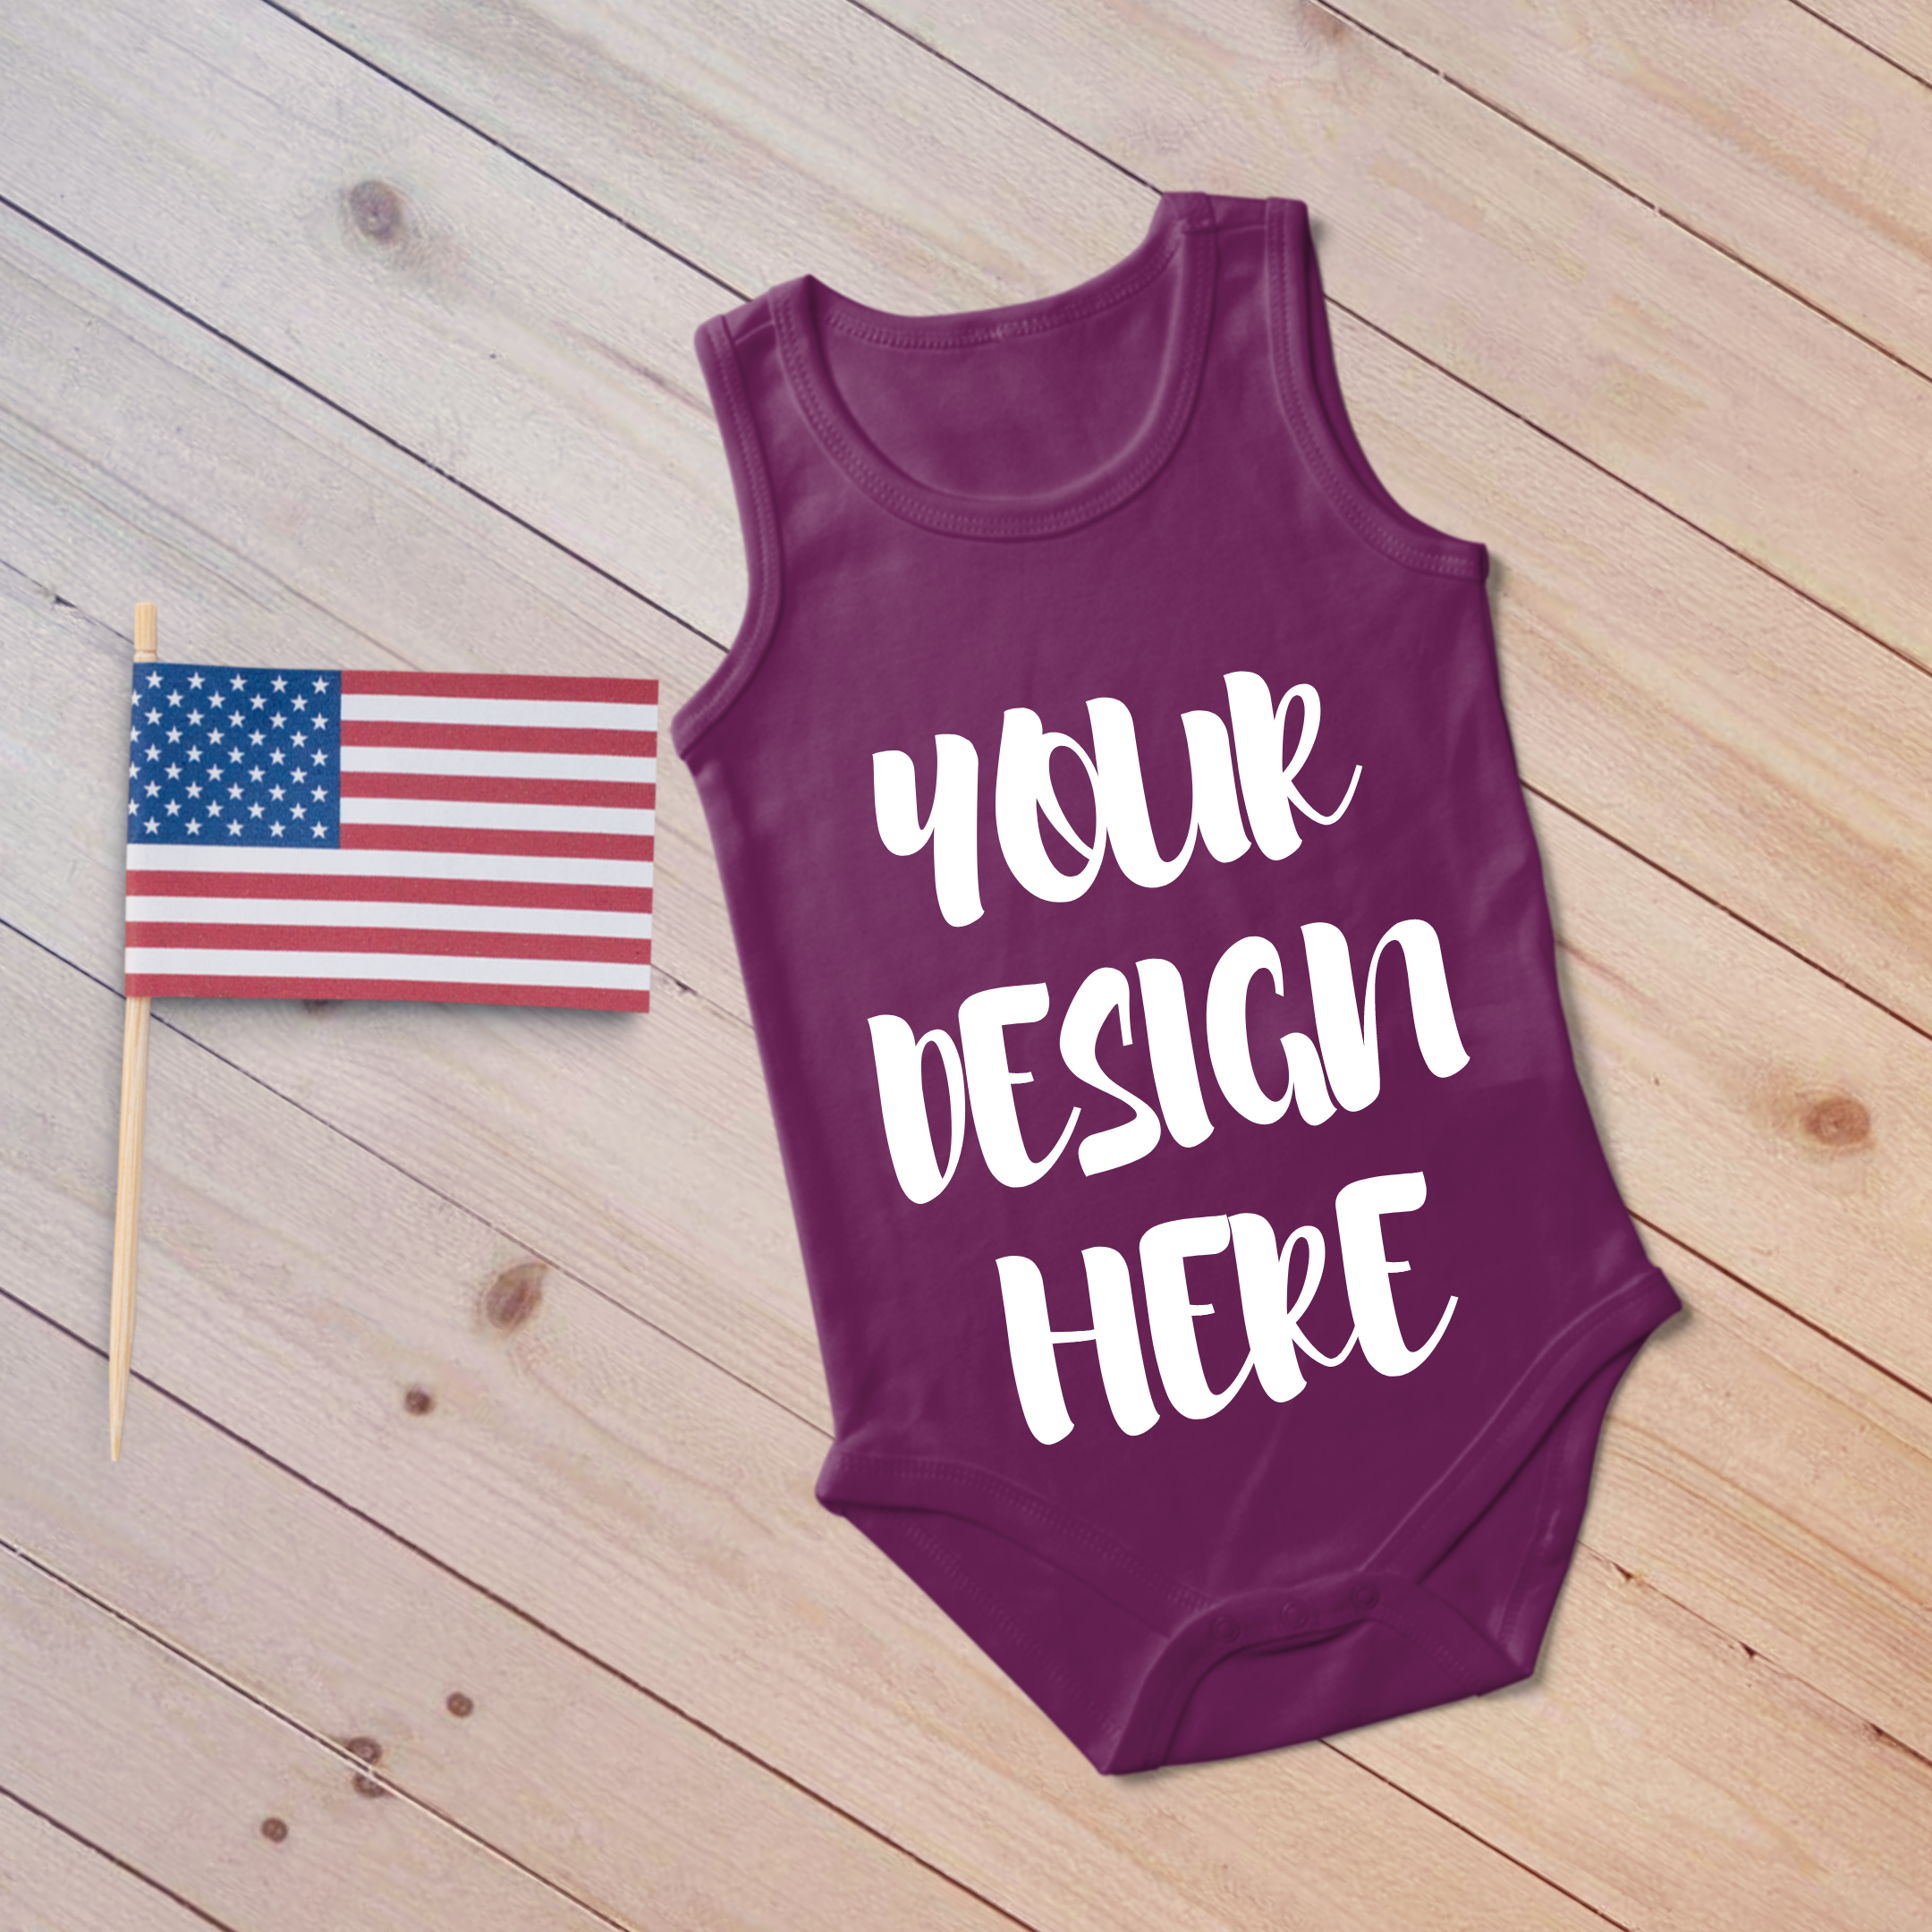 4th July Singlet Baby Bodysuit Mockups - 7 example image 4